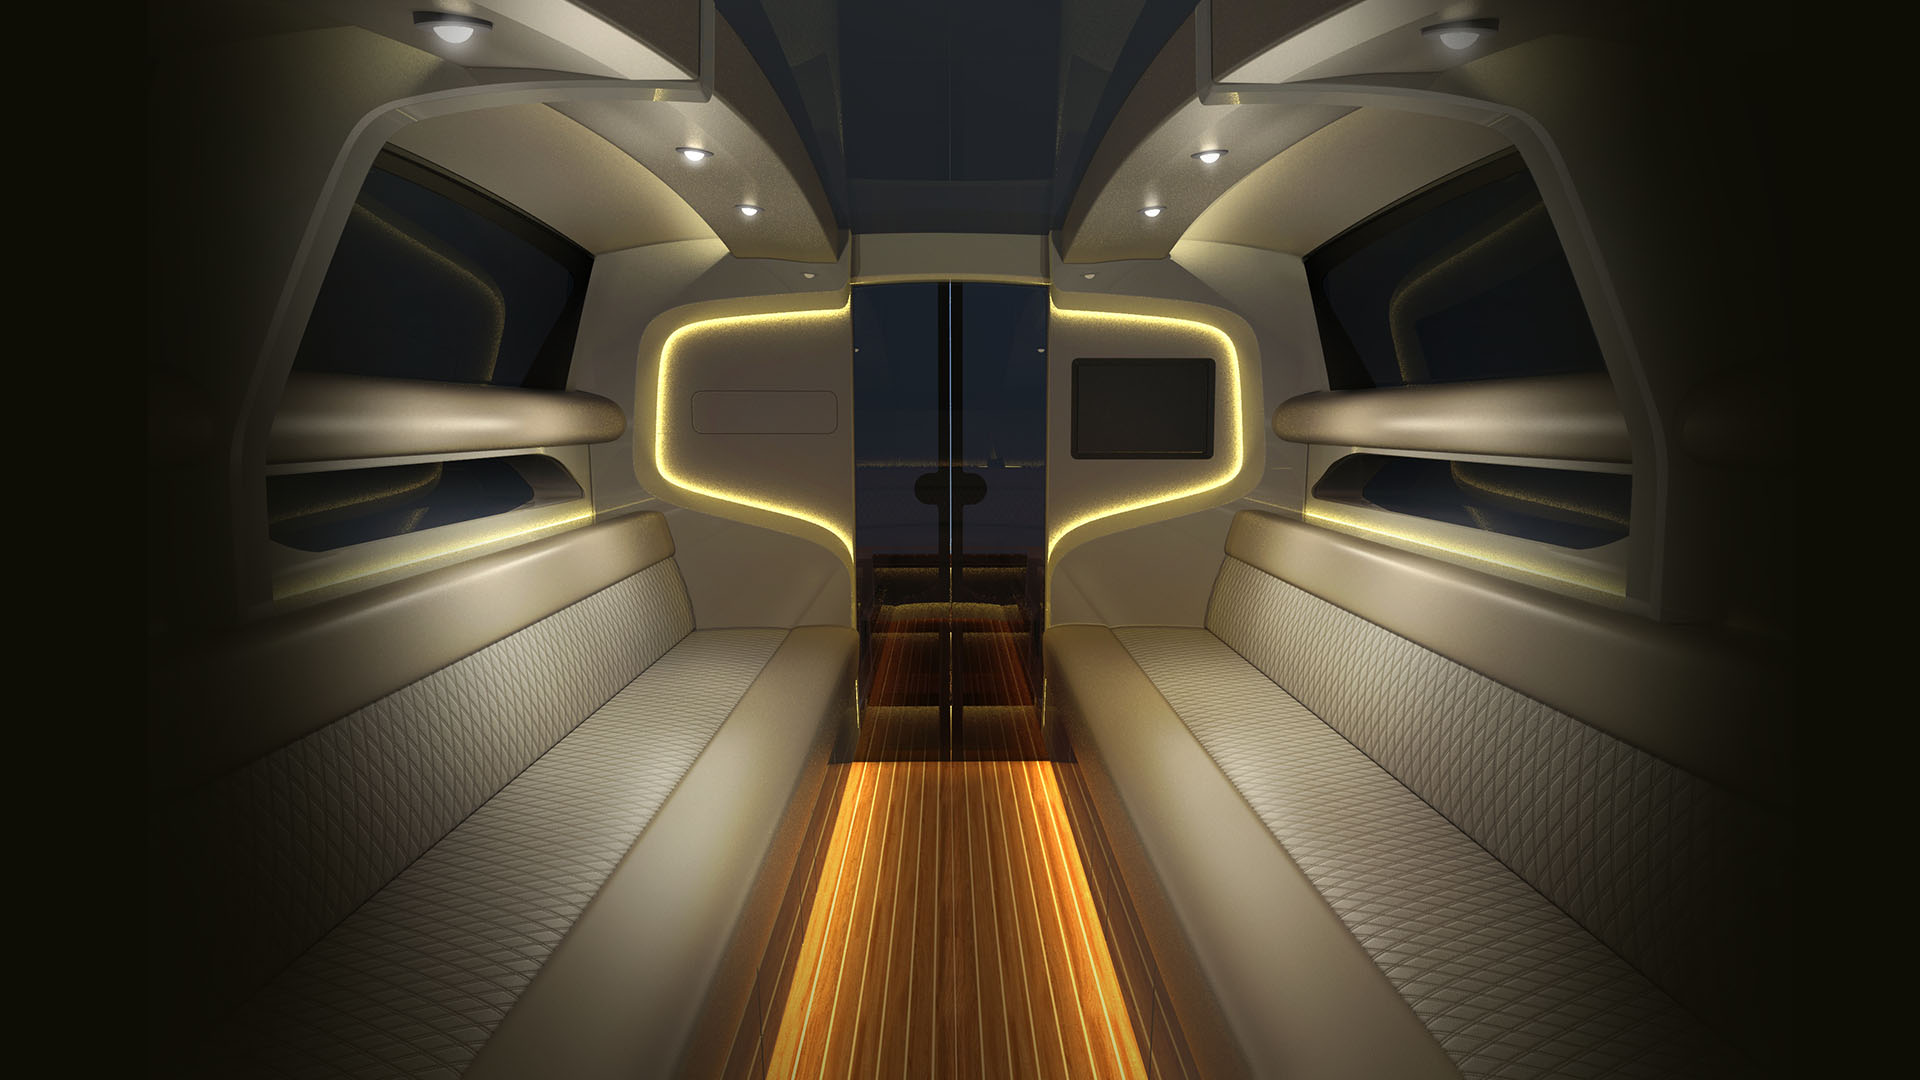 yacht interior design rendering of the superyacht tender design by H.Bekradi